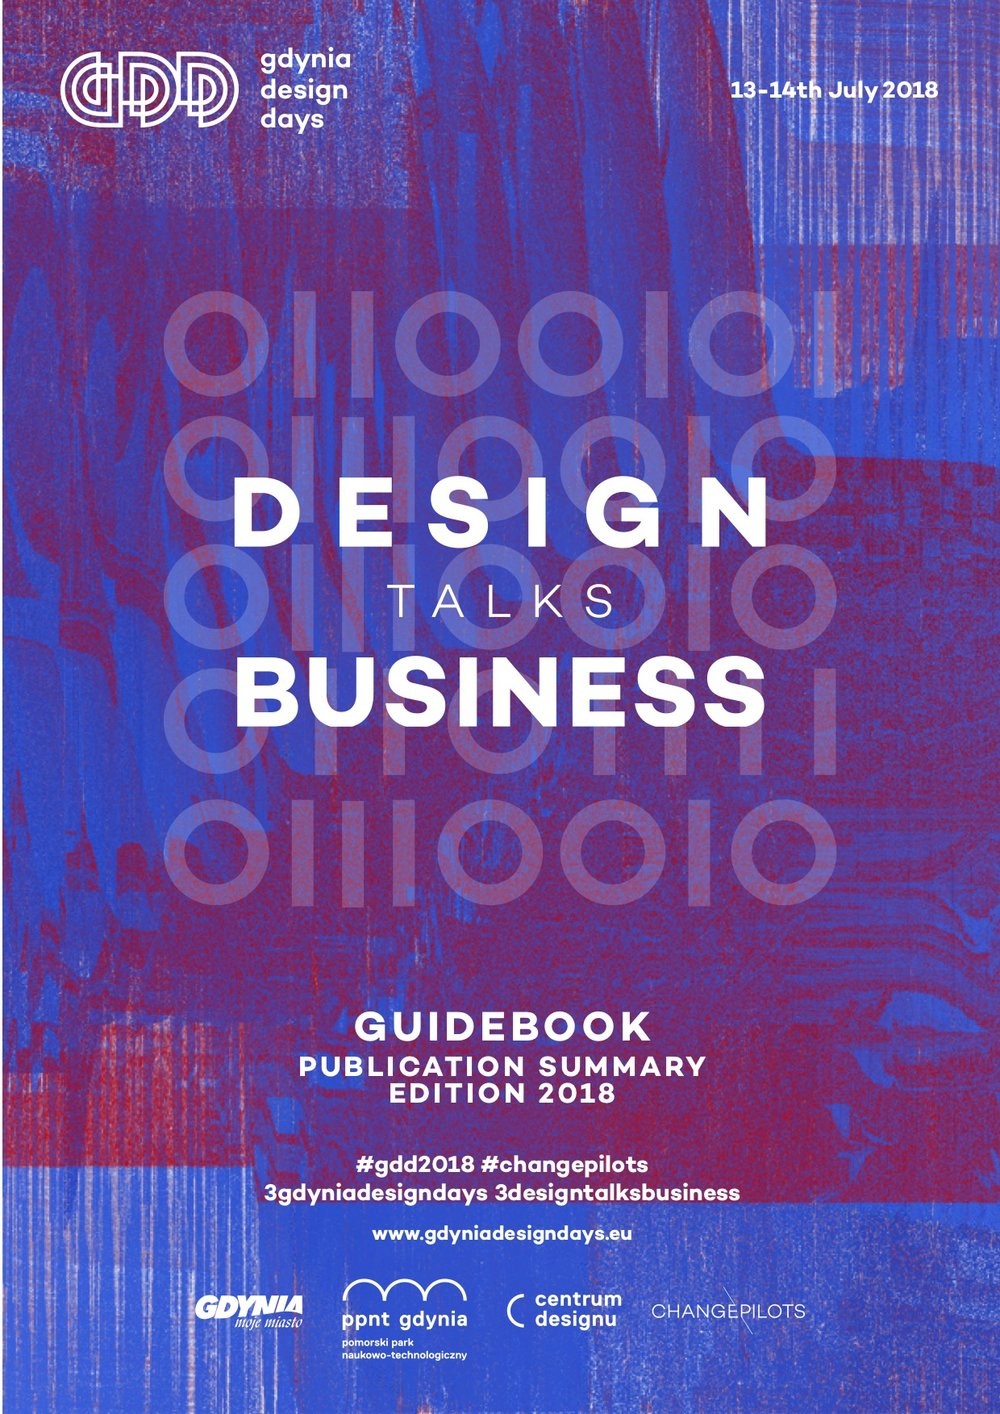 Guide Book - Gdynia Design Days - Design meets Business.jpg